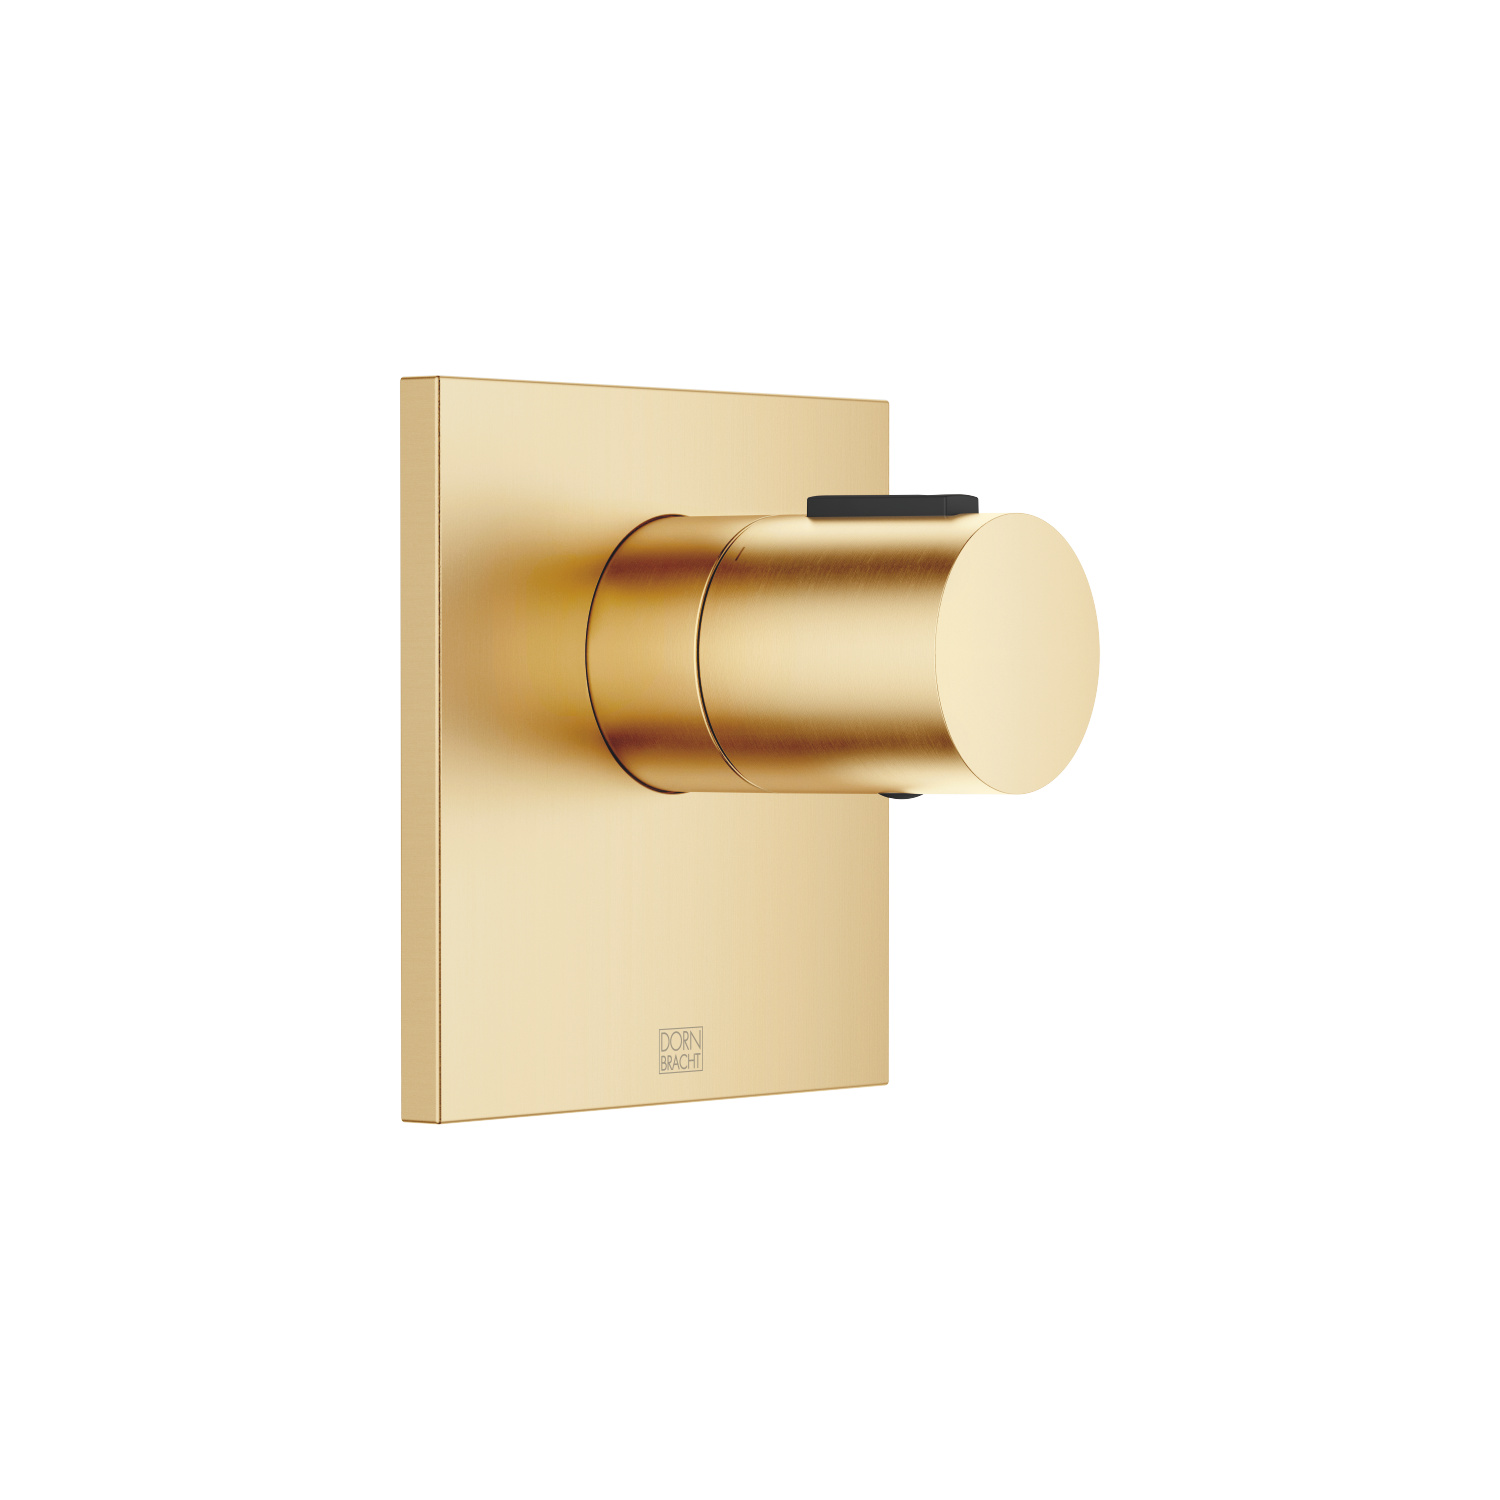 "xTOOL Concealed thermostat without volume control 1/2"" - brushed Durabrass"